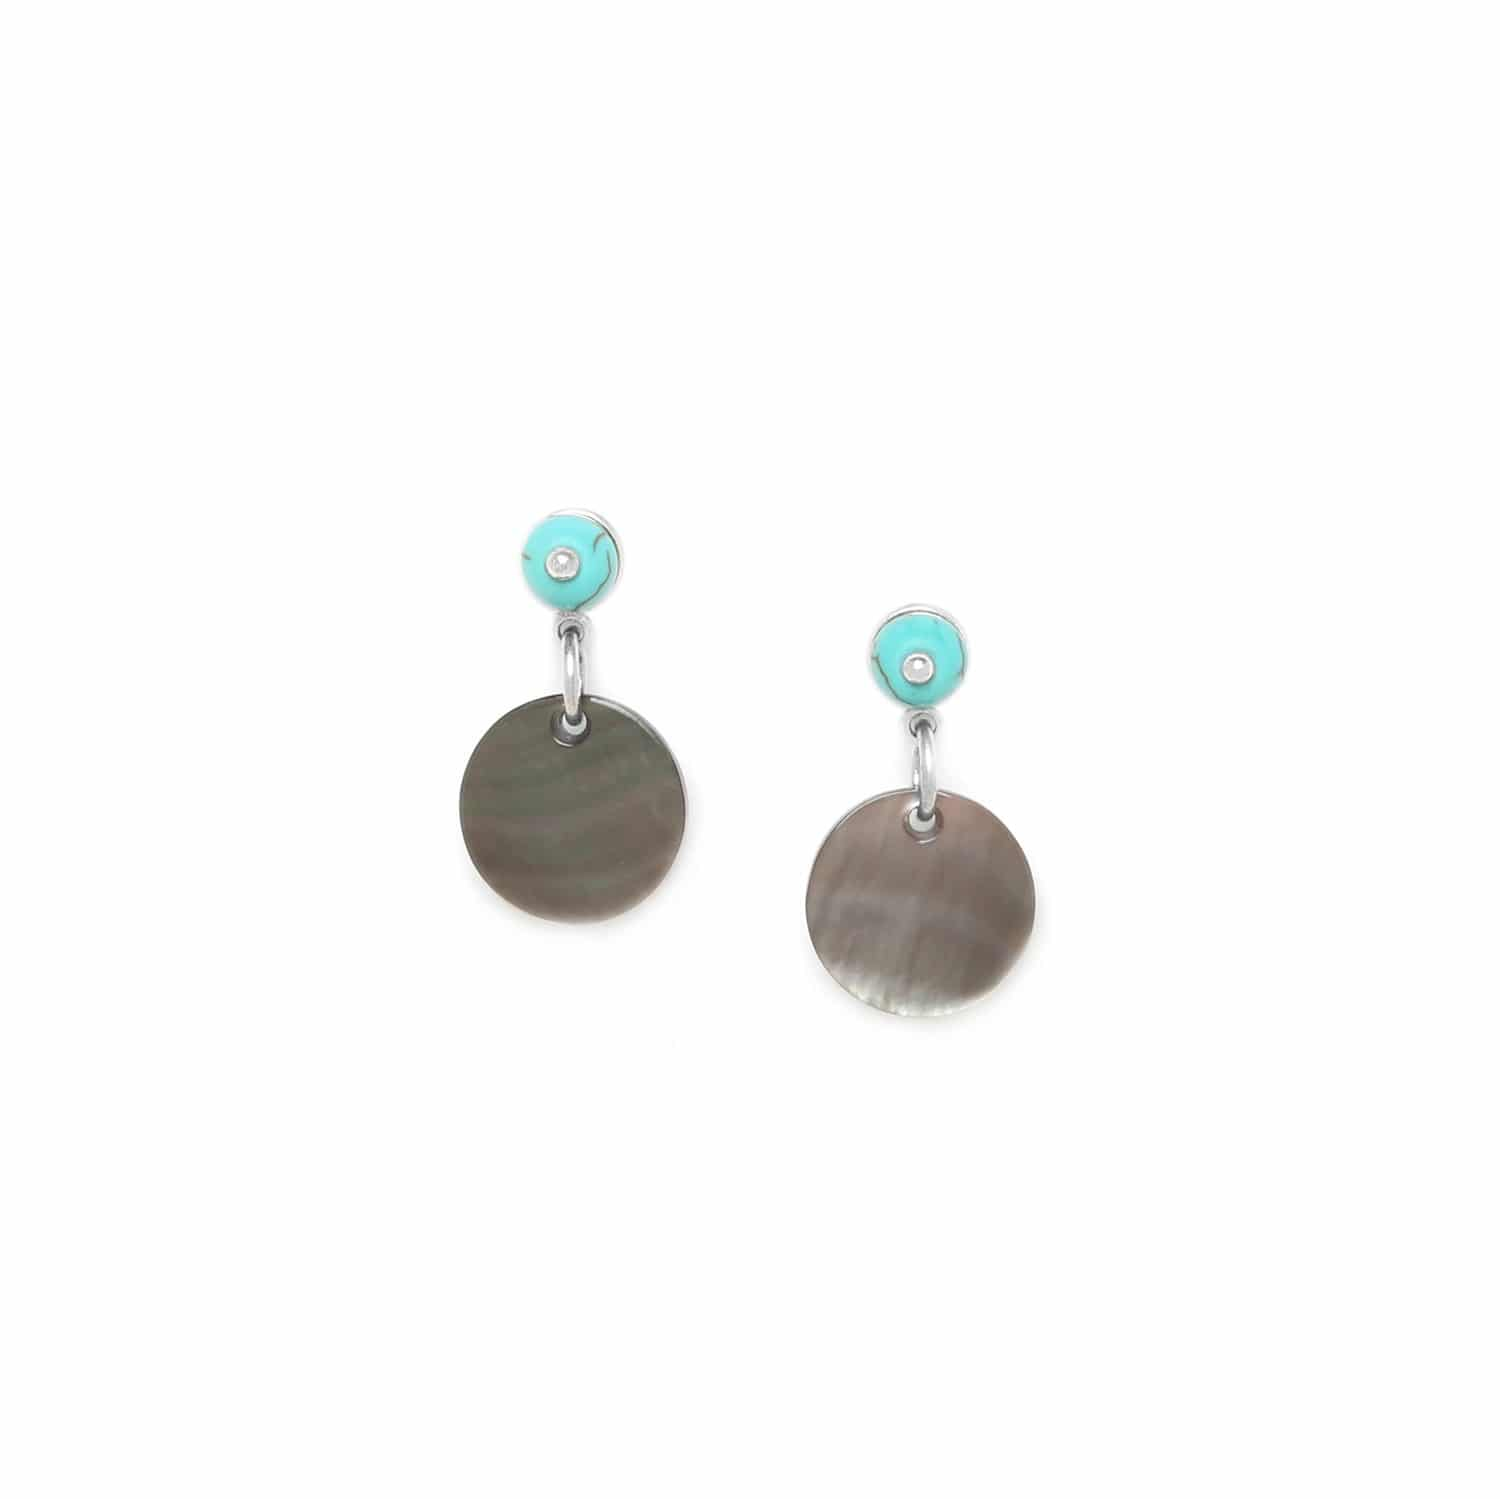 CURACAO blacklip disc earrings